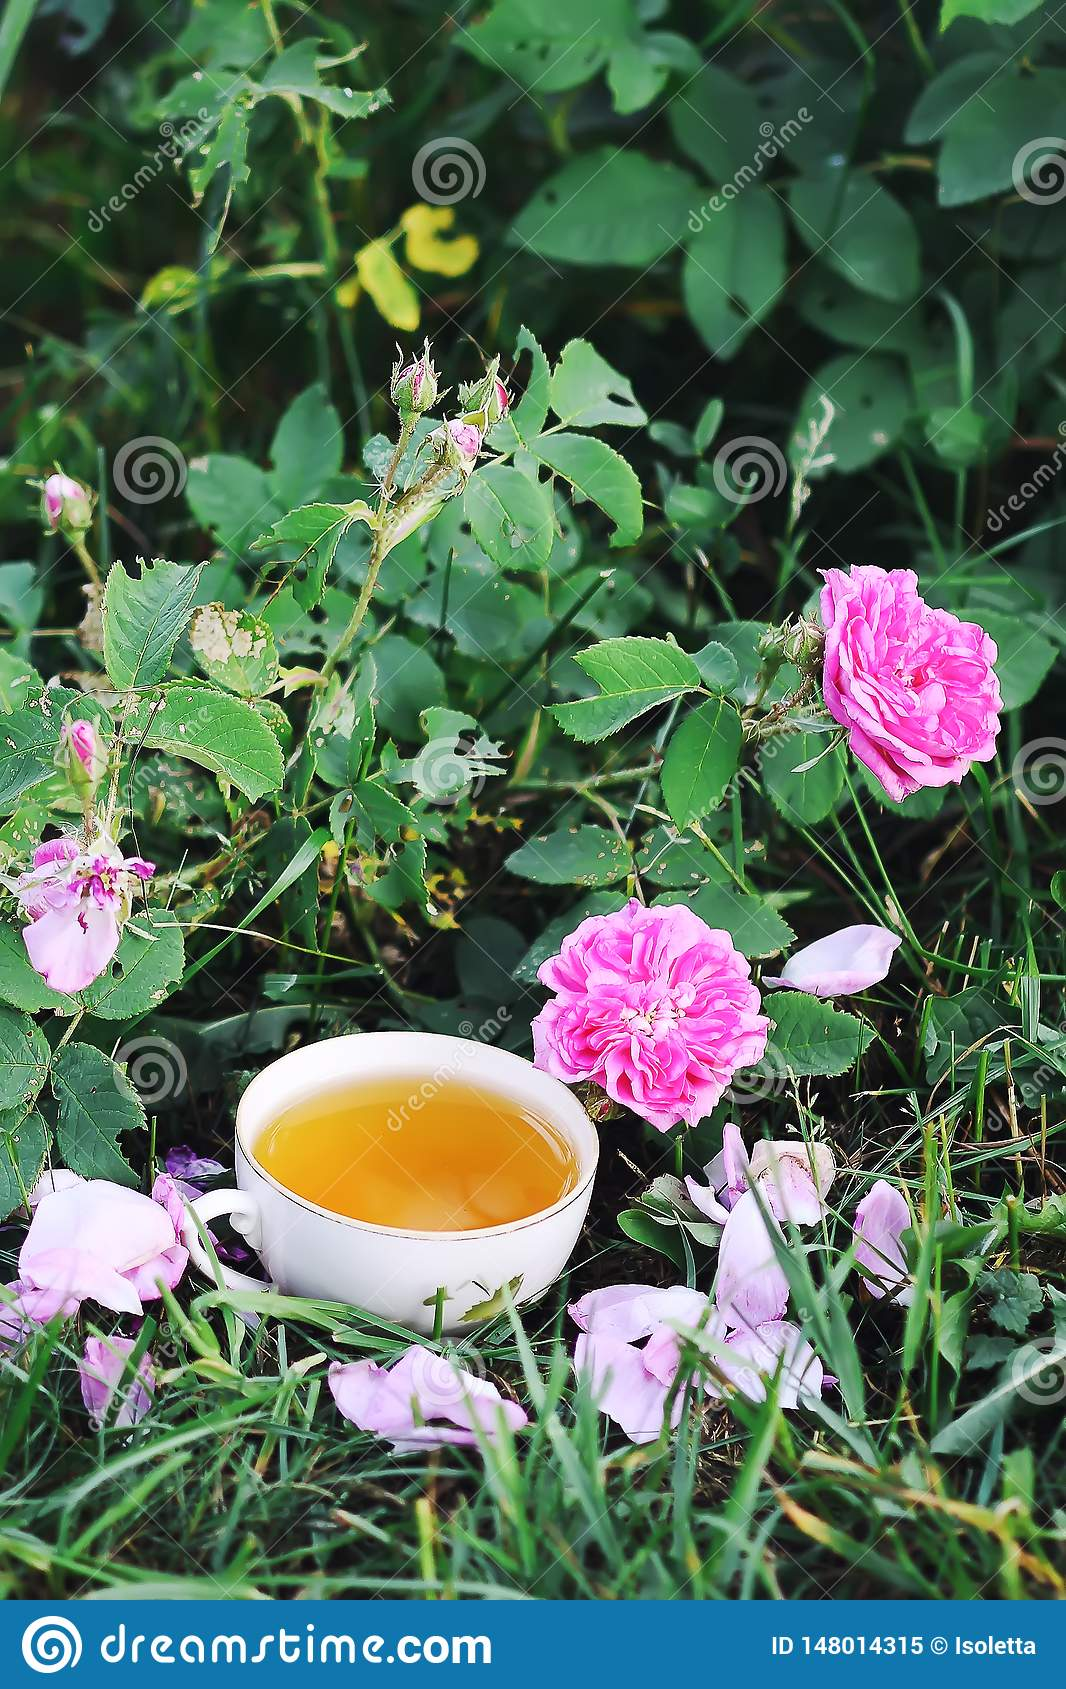 Tea in country style in summer garden in the village. Vintafe cup of green herbal tea and blooming pink roses in sunlight